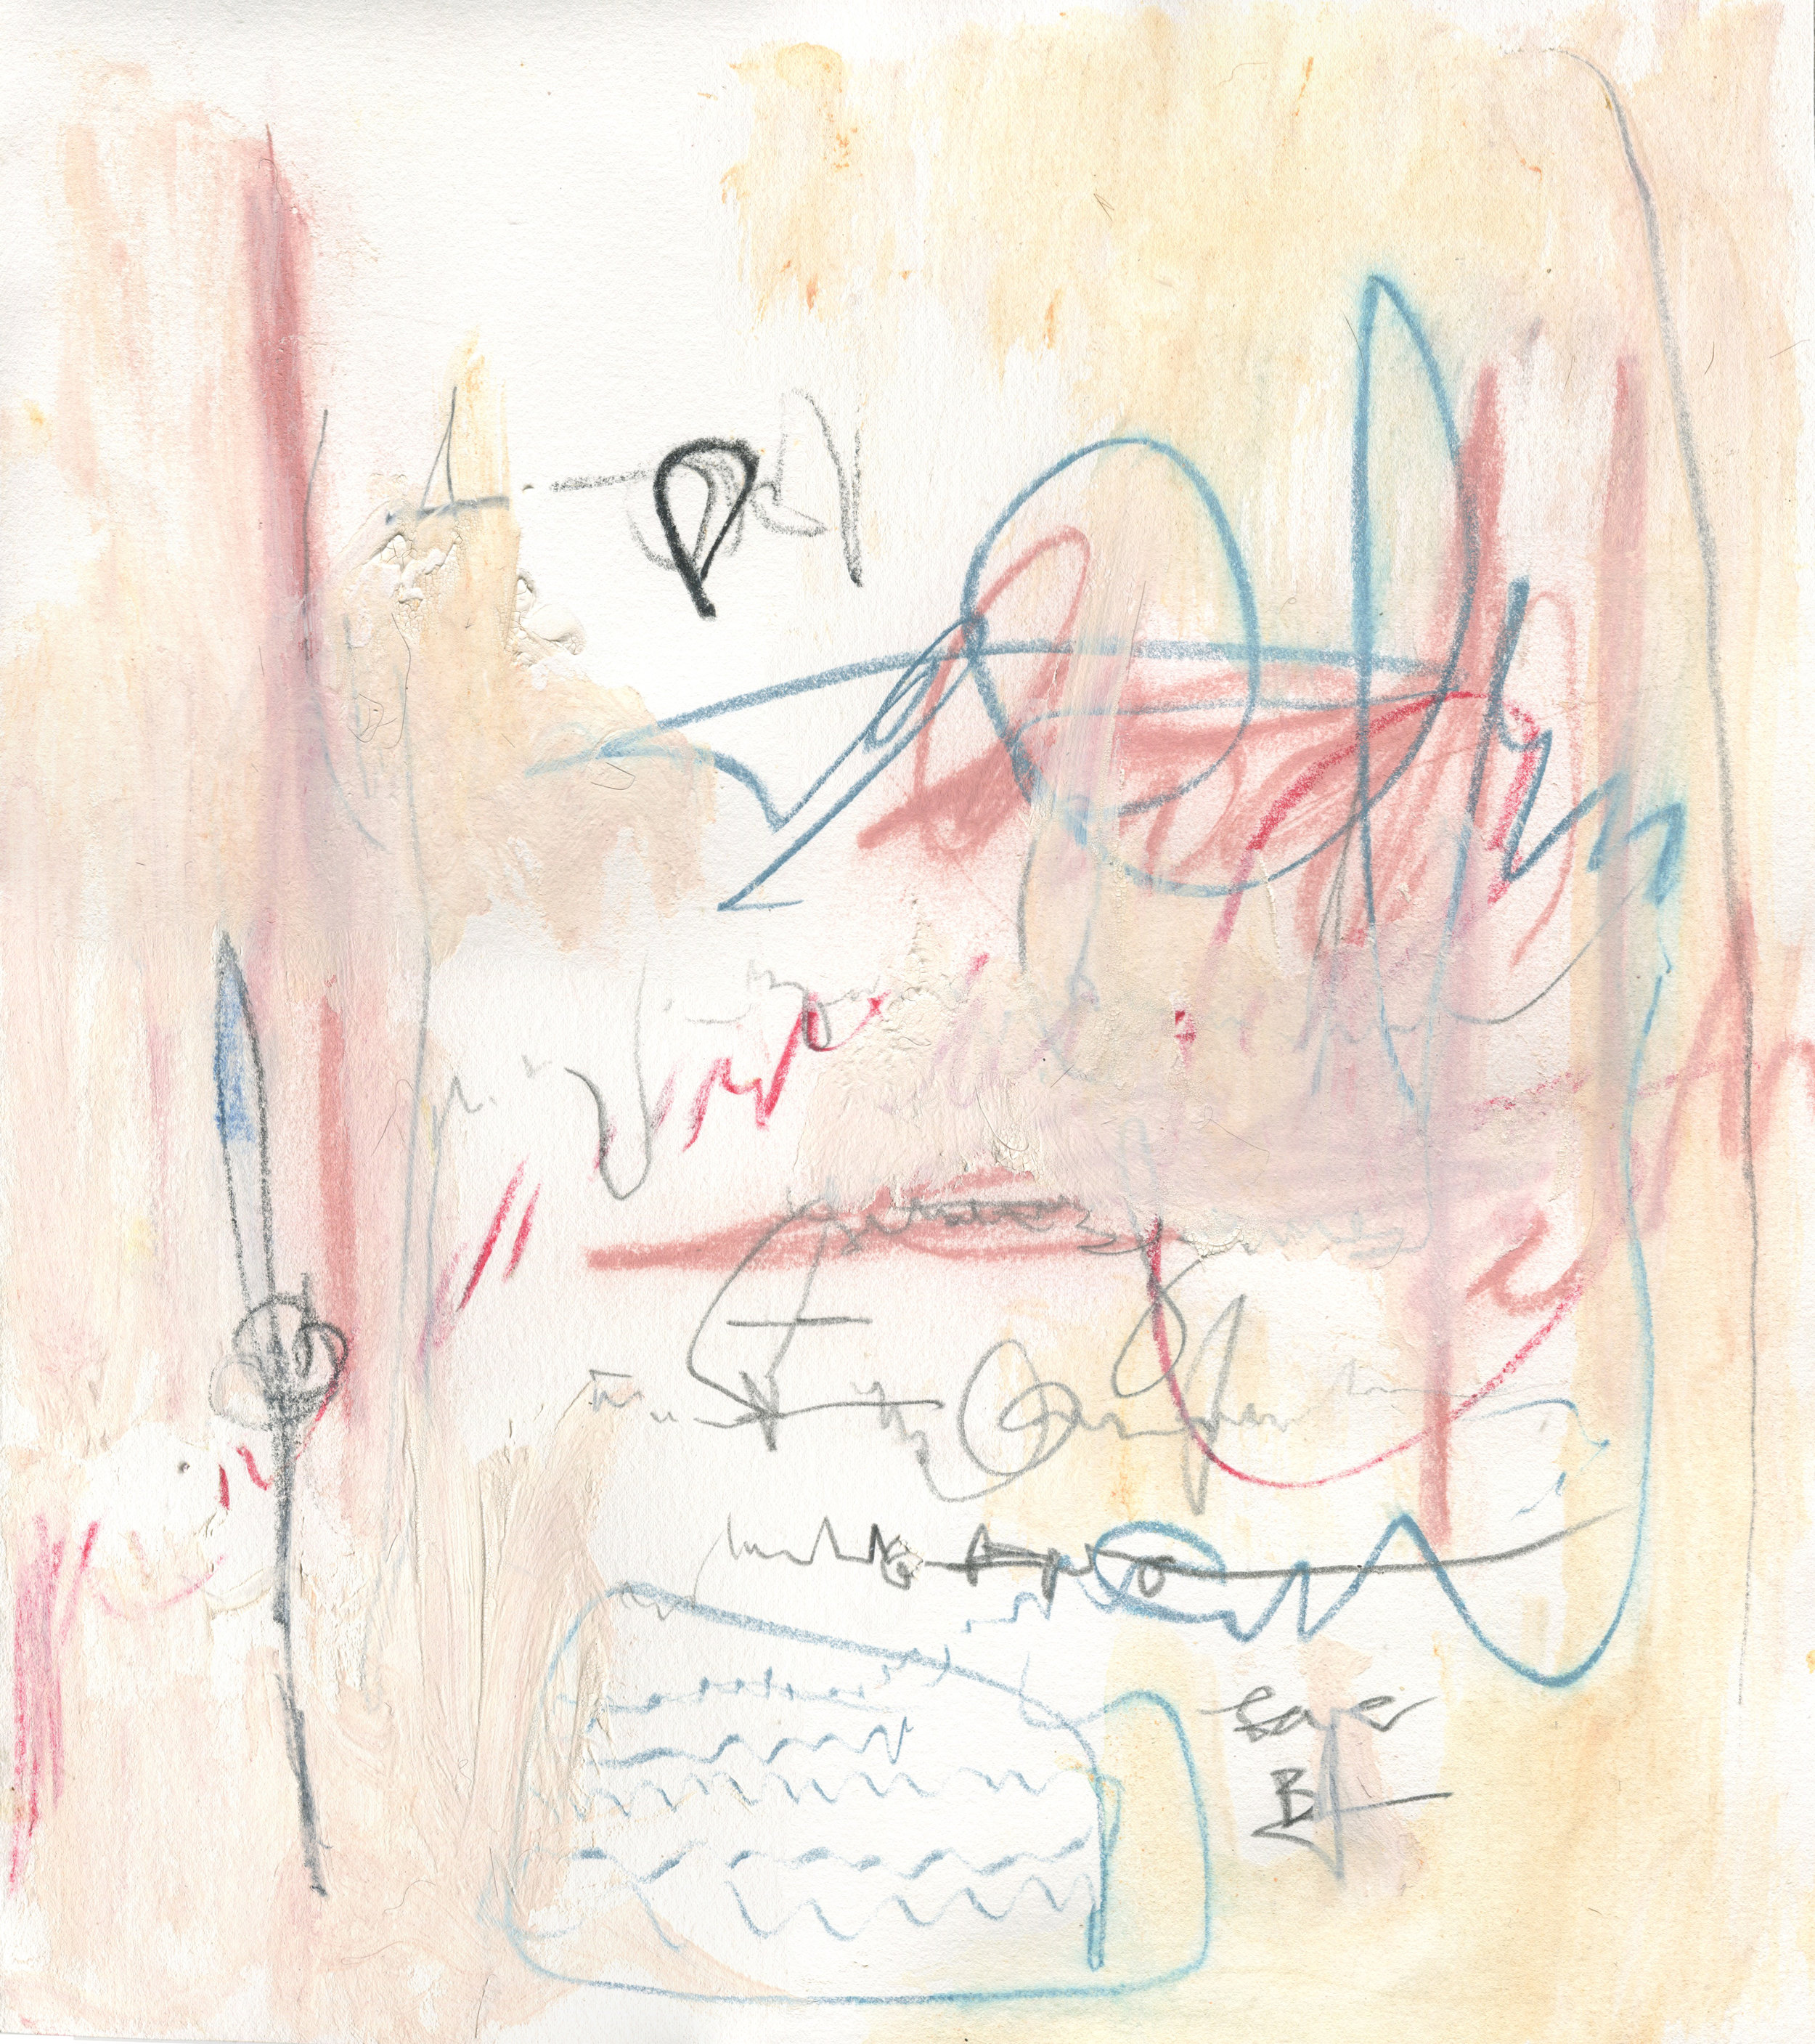 Letters of Wonders and Riches, 2016  15 x 13.5 inches  Graphite, Crayon, Lithography Crayon, and Acrylic on Paper